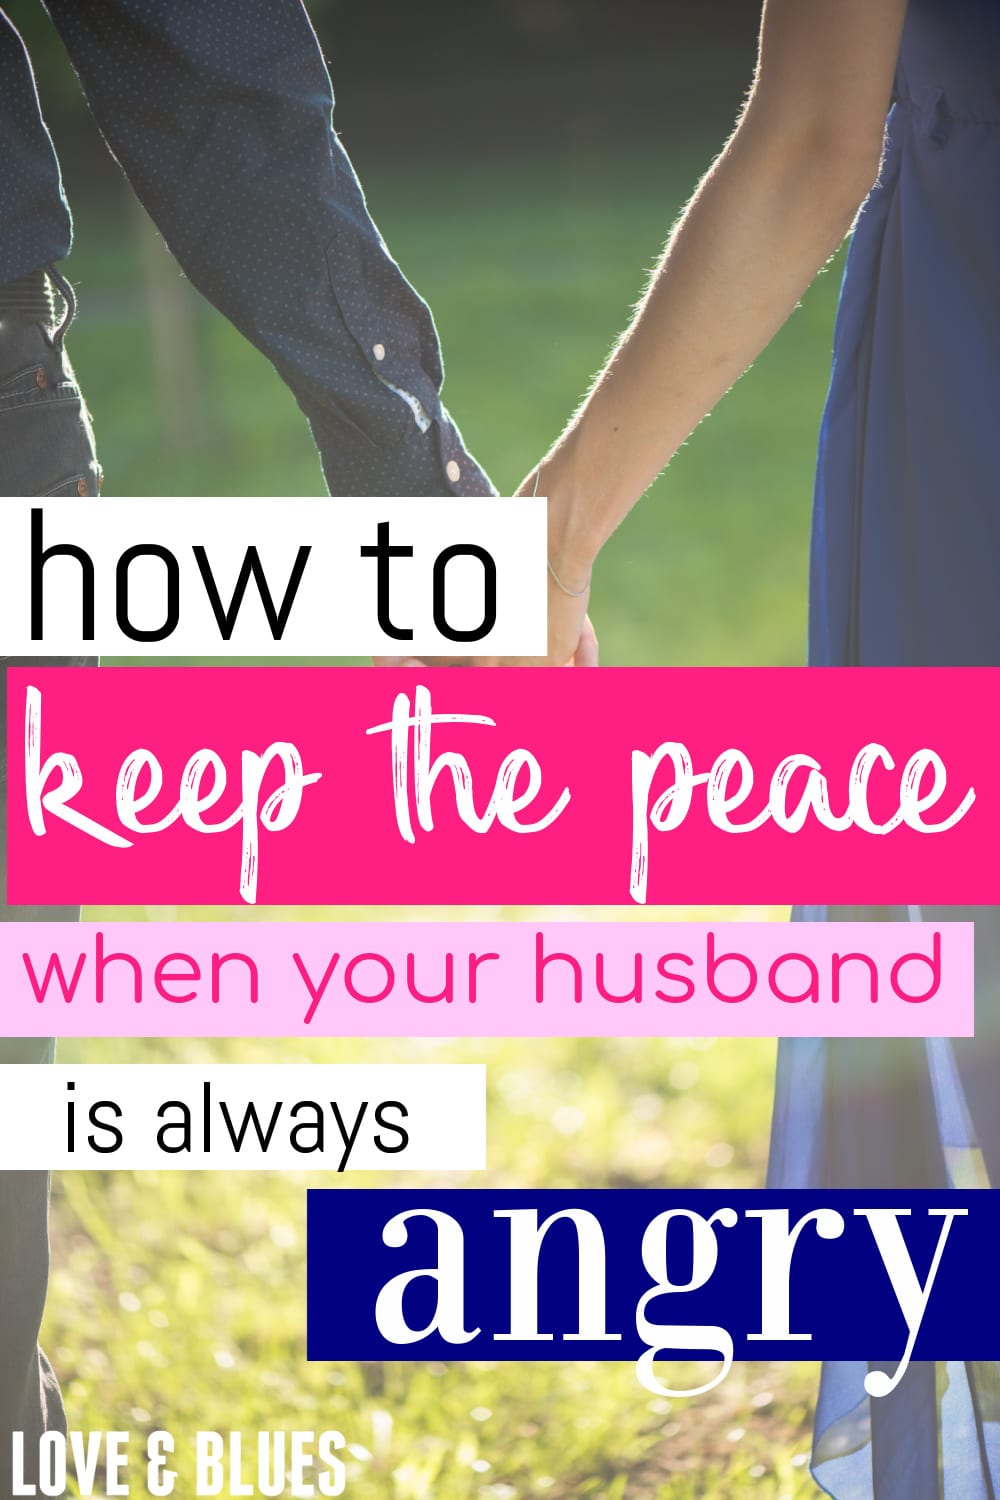 Great Christian-based marriage advice on what to do when it seems like your husband always angry! Very balanced between understanding and upholding your own boundaries.